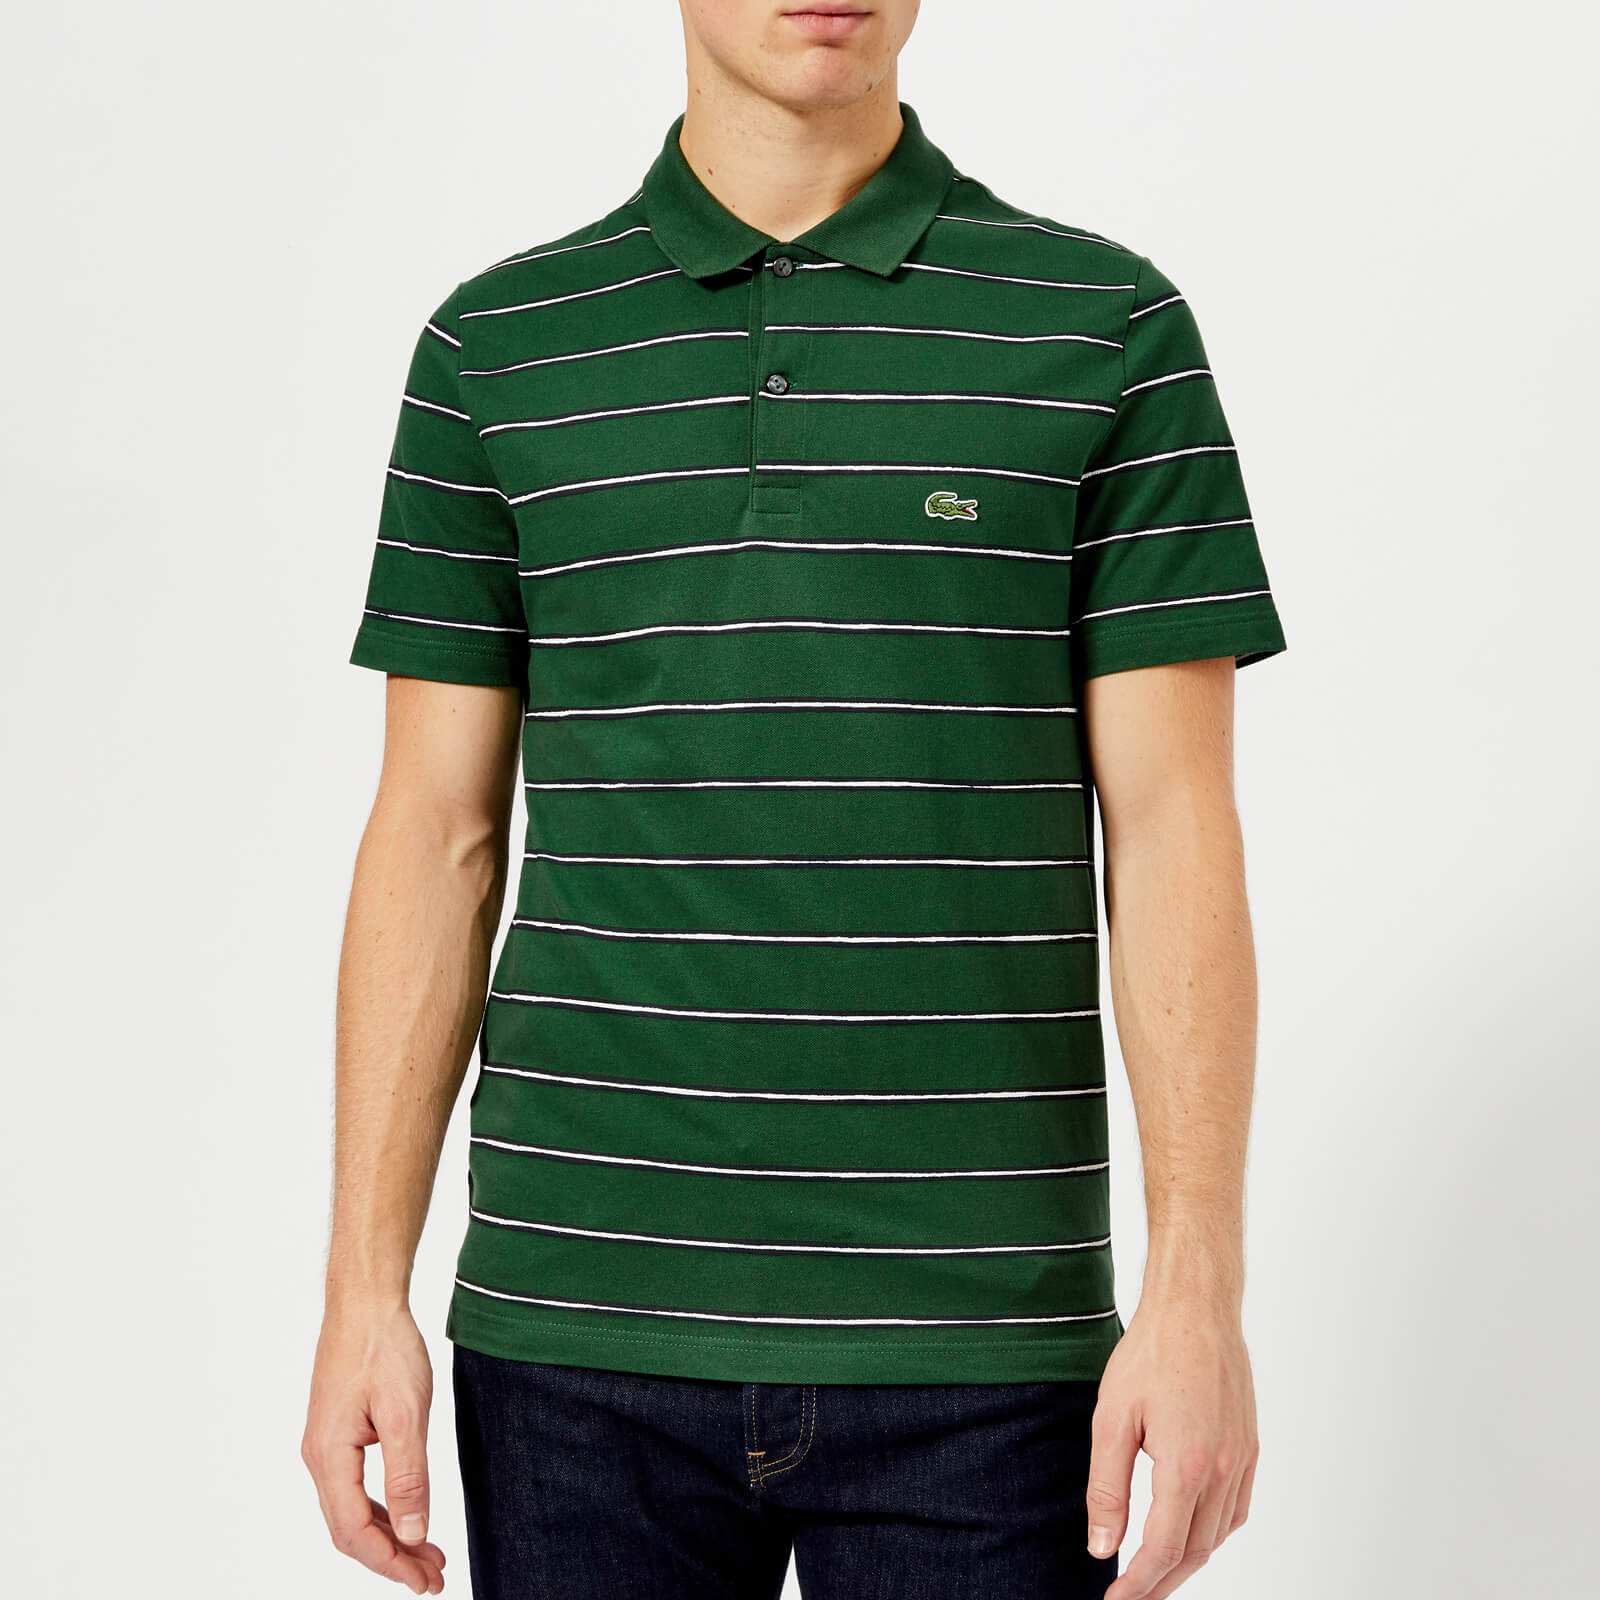 133406df6 Lacoste Men s Small Striped Polo Shirt - Green Abyssal Blue-White - Free UK  Delivery over £50